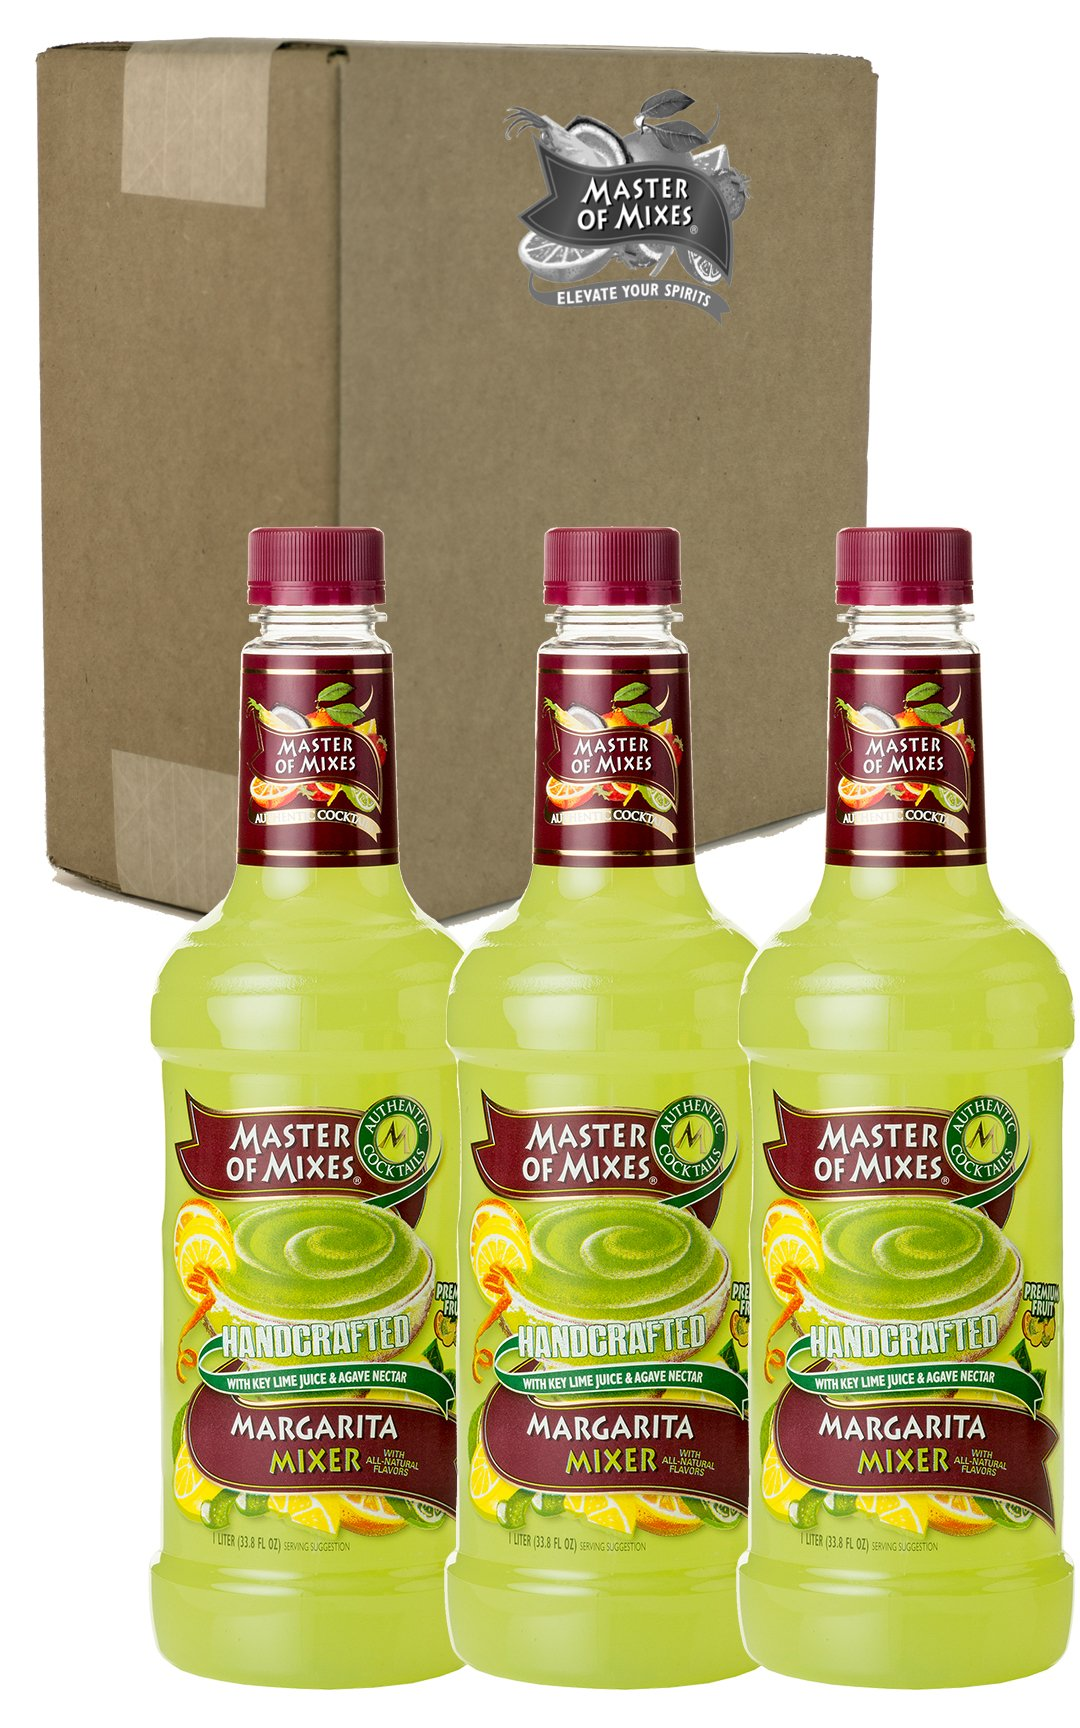 Master of Mixes Margarita Drink Mix, Ready To Use, 1 Liter Bottle (33.8 Fl Oz), Pack of 3